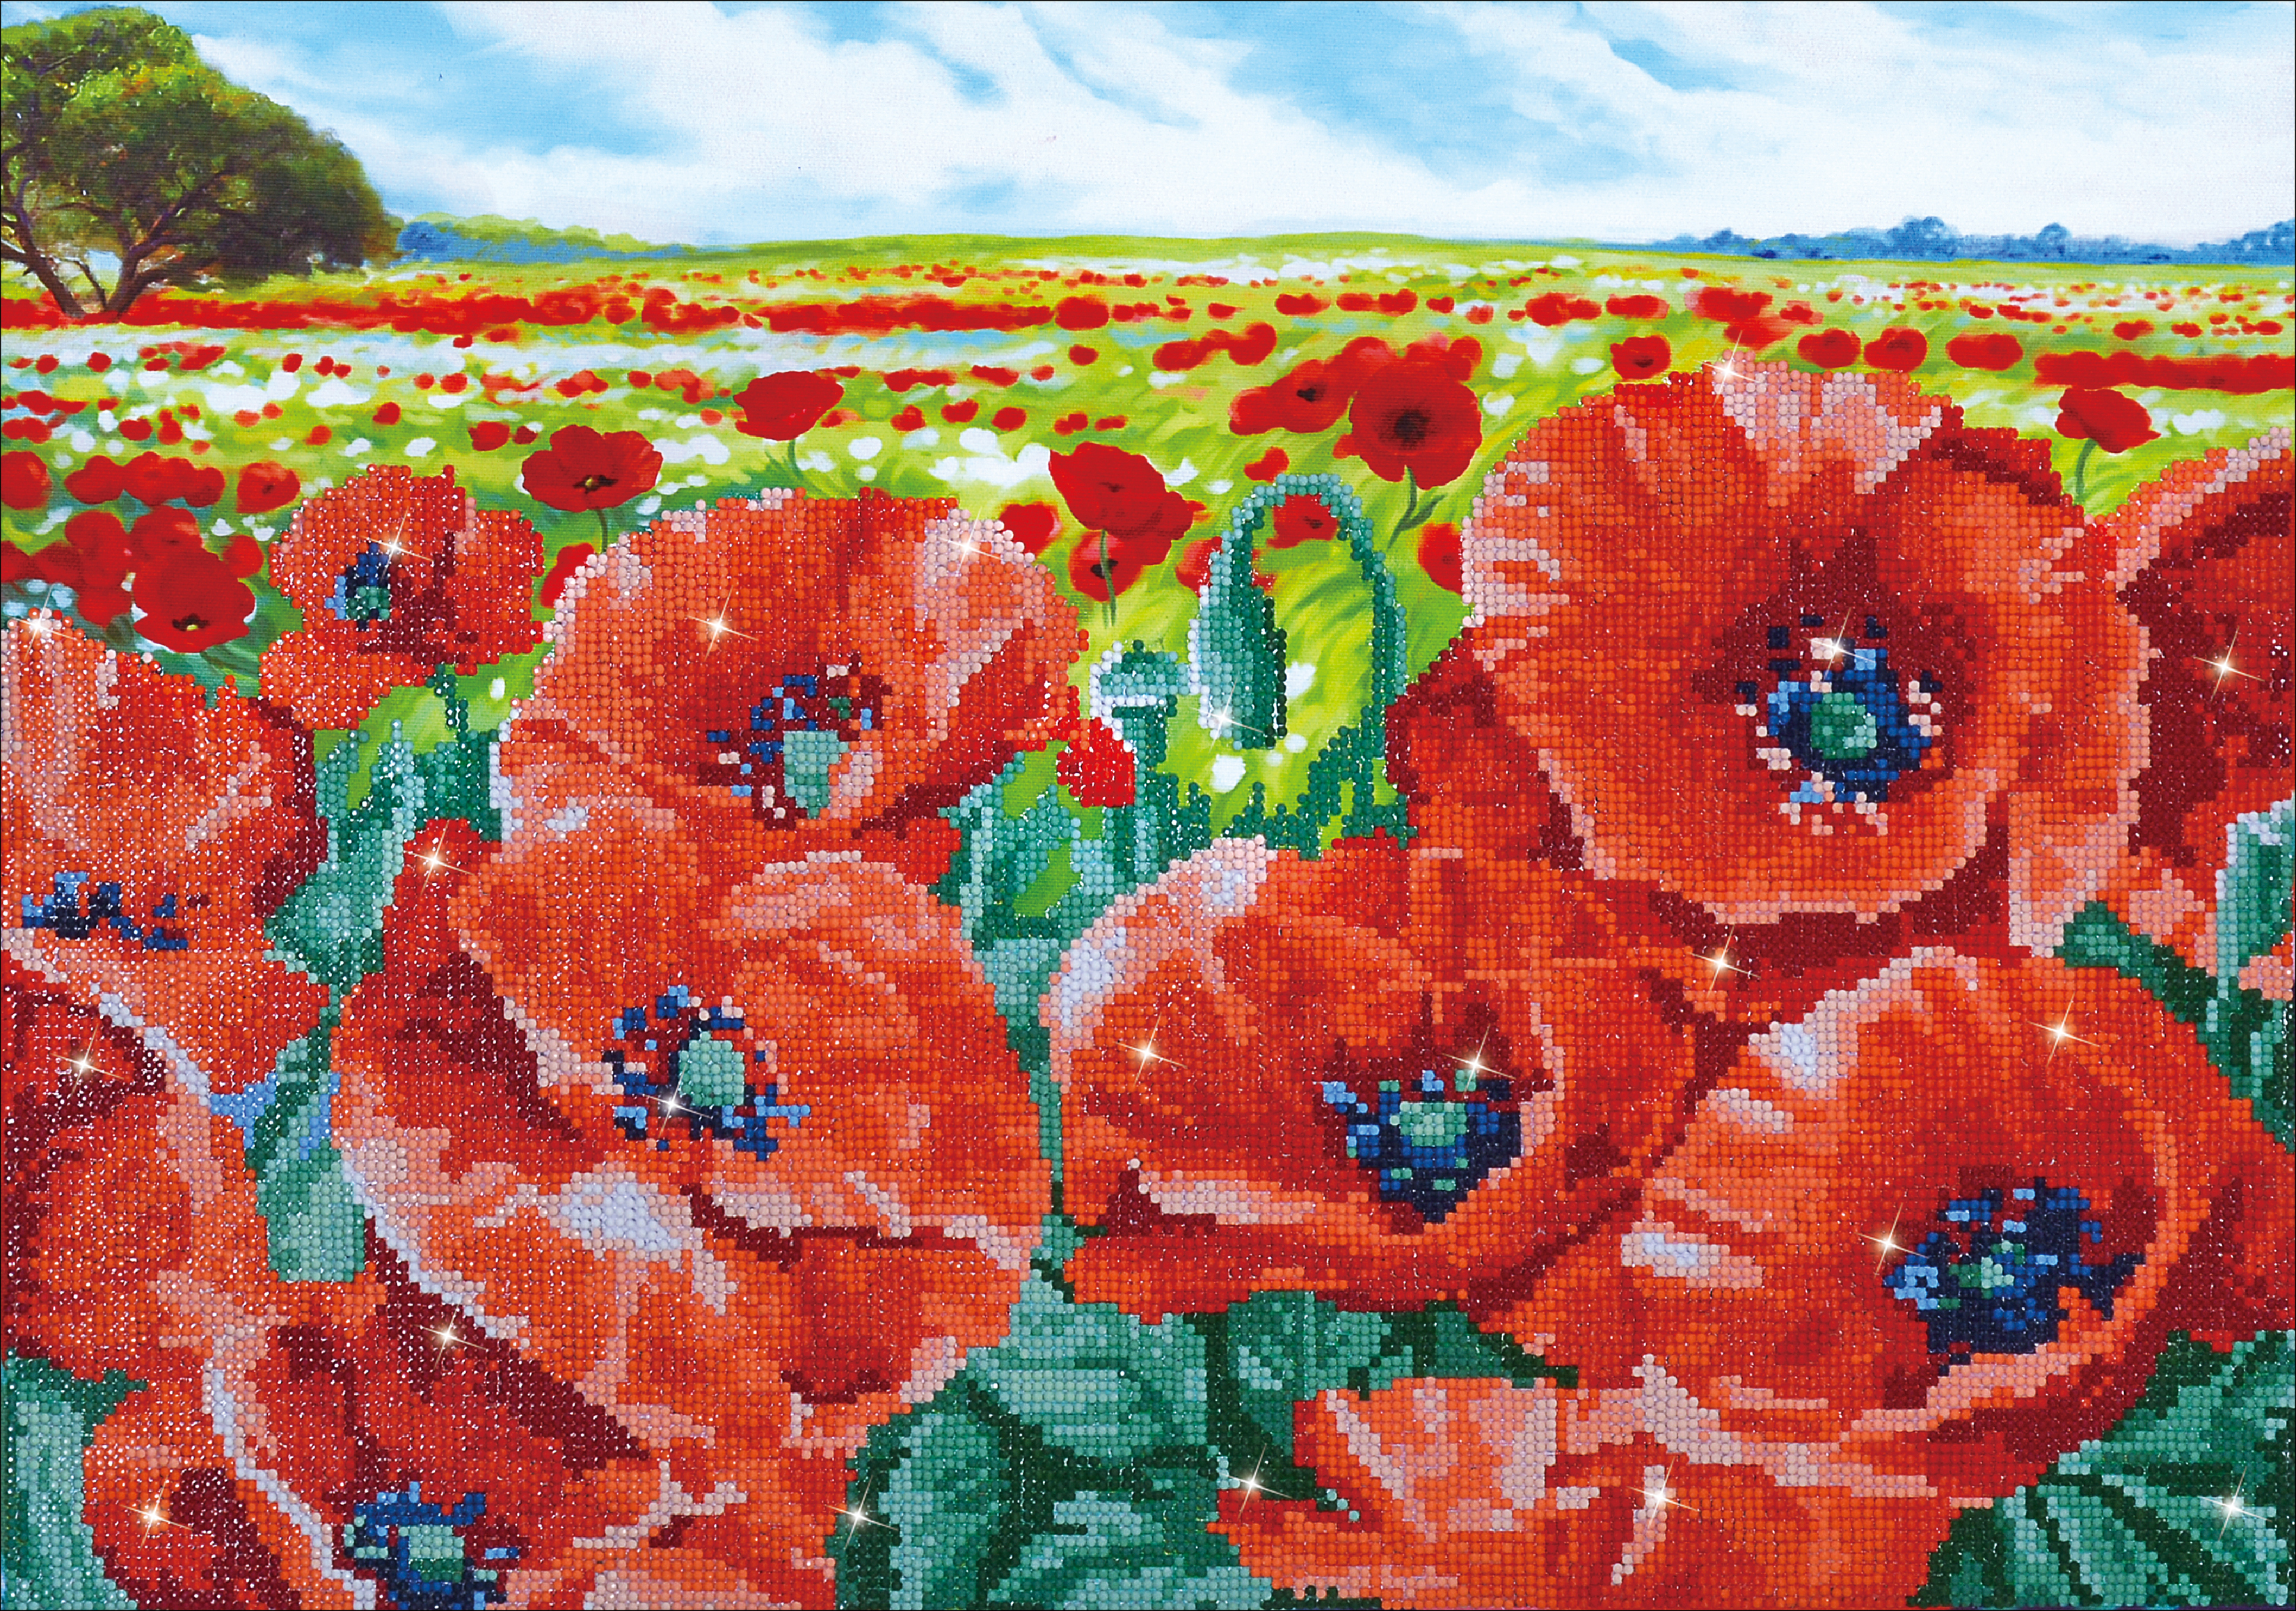 Diamond Dotz Diamond Embroidery Facet Art Kit 26.75X19.75-Red Poppy Field